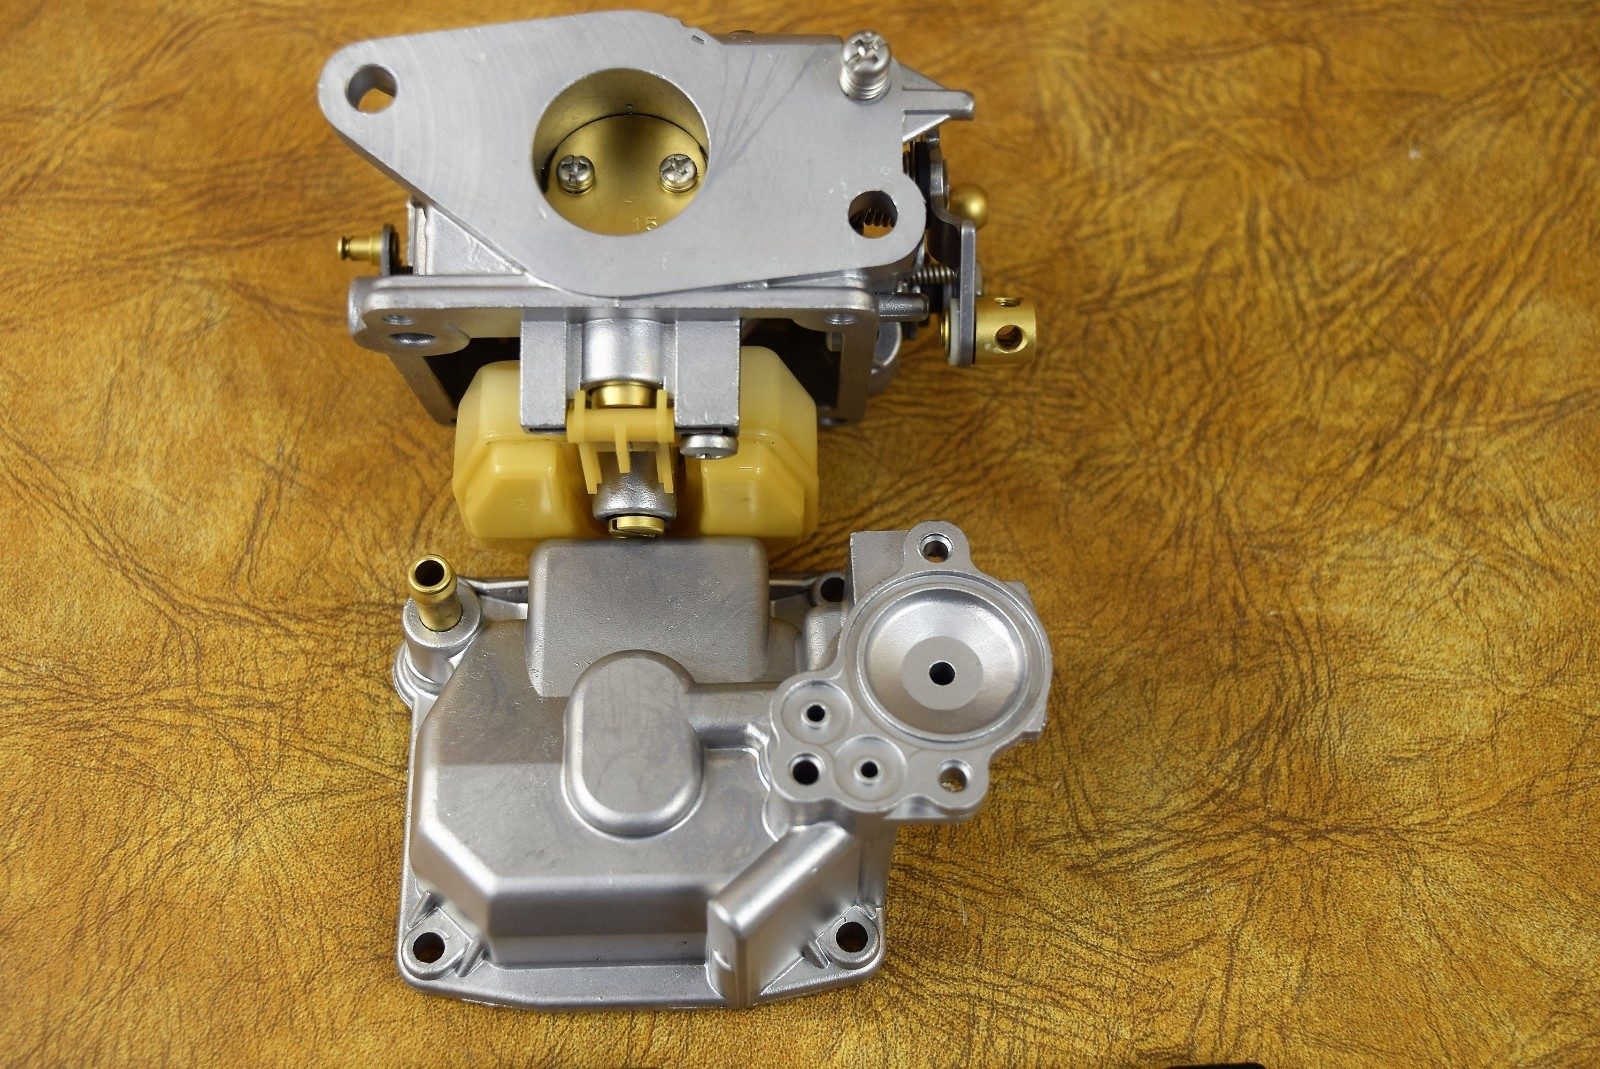 Refurbished 2000 Mercury Mariner Carburetor Assembly C Www Diagram Of 20 Carb2cyl4stroke Outboard 0r235168 Up Top Clean 66l51